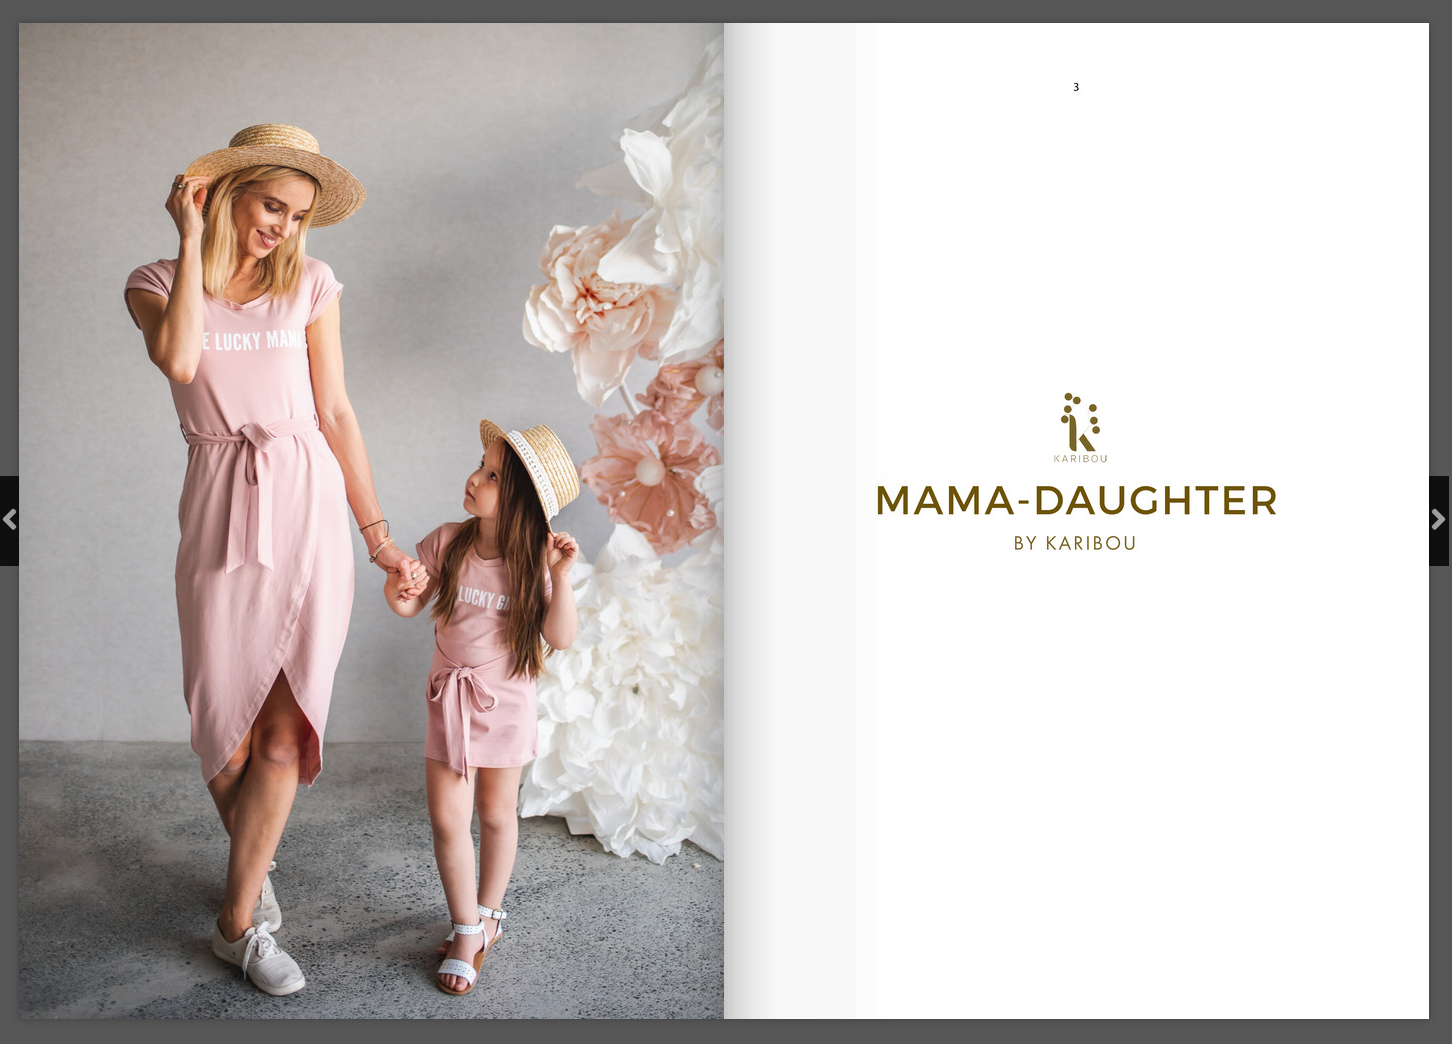 Mama Daughter range lookbook by Karibou